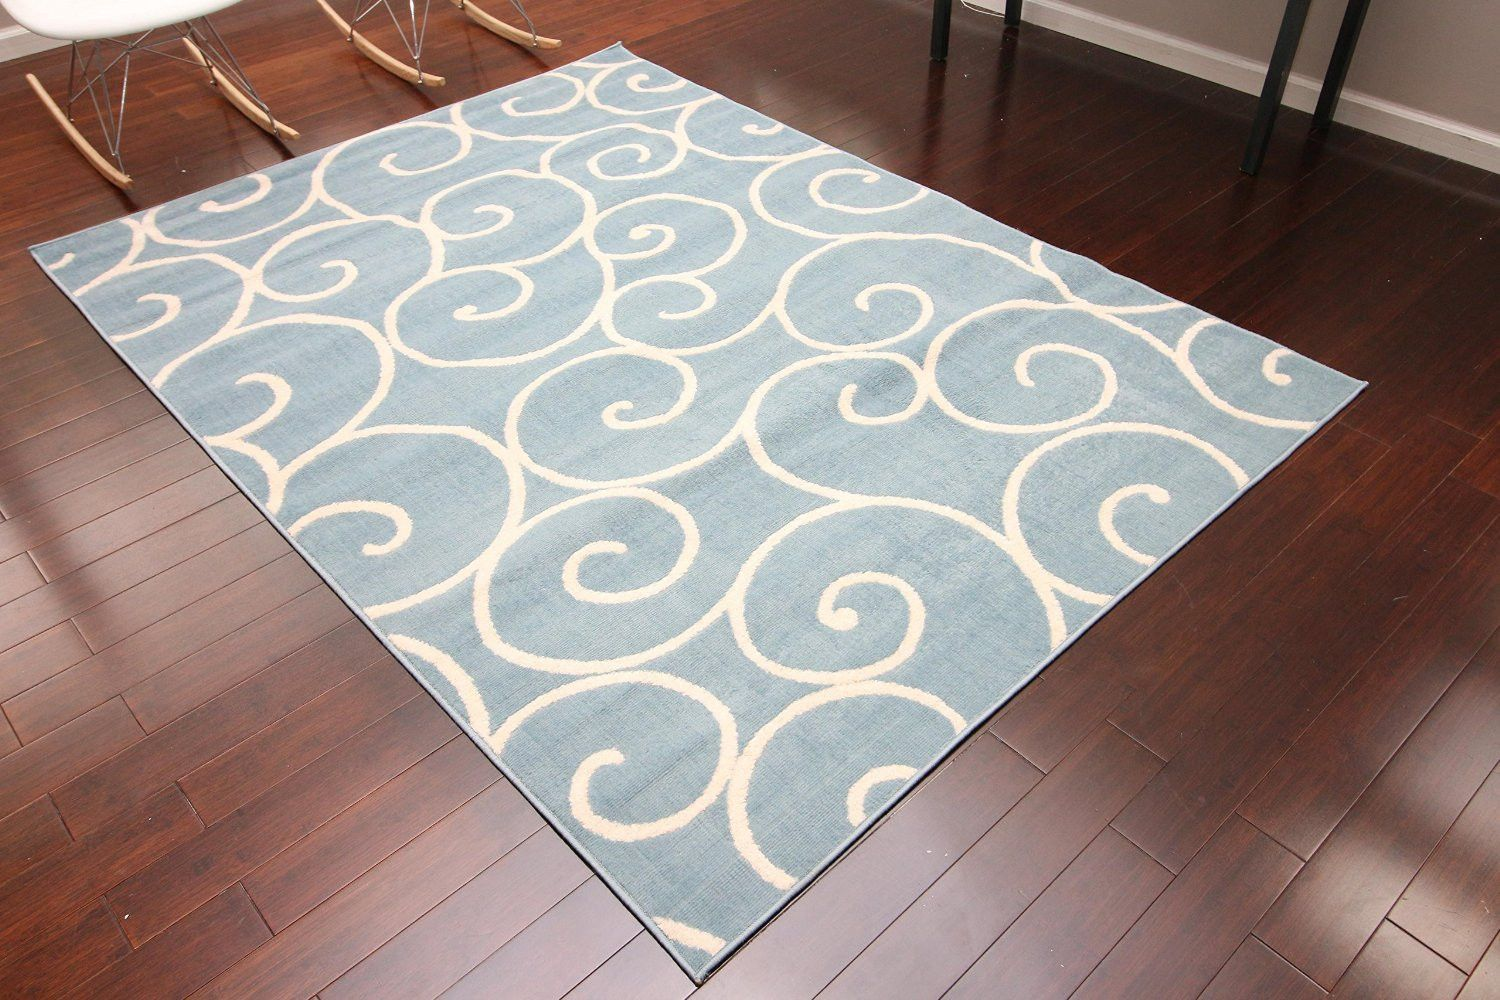 Cheap 5 215 8 Area Rugs Roselawnlutheran